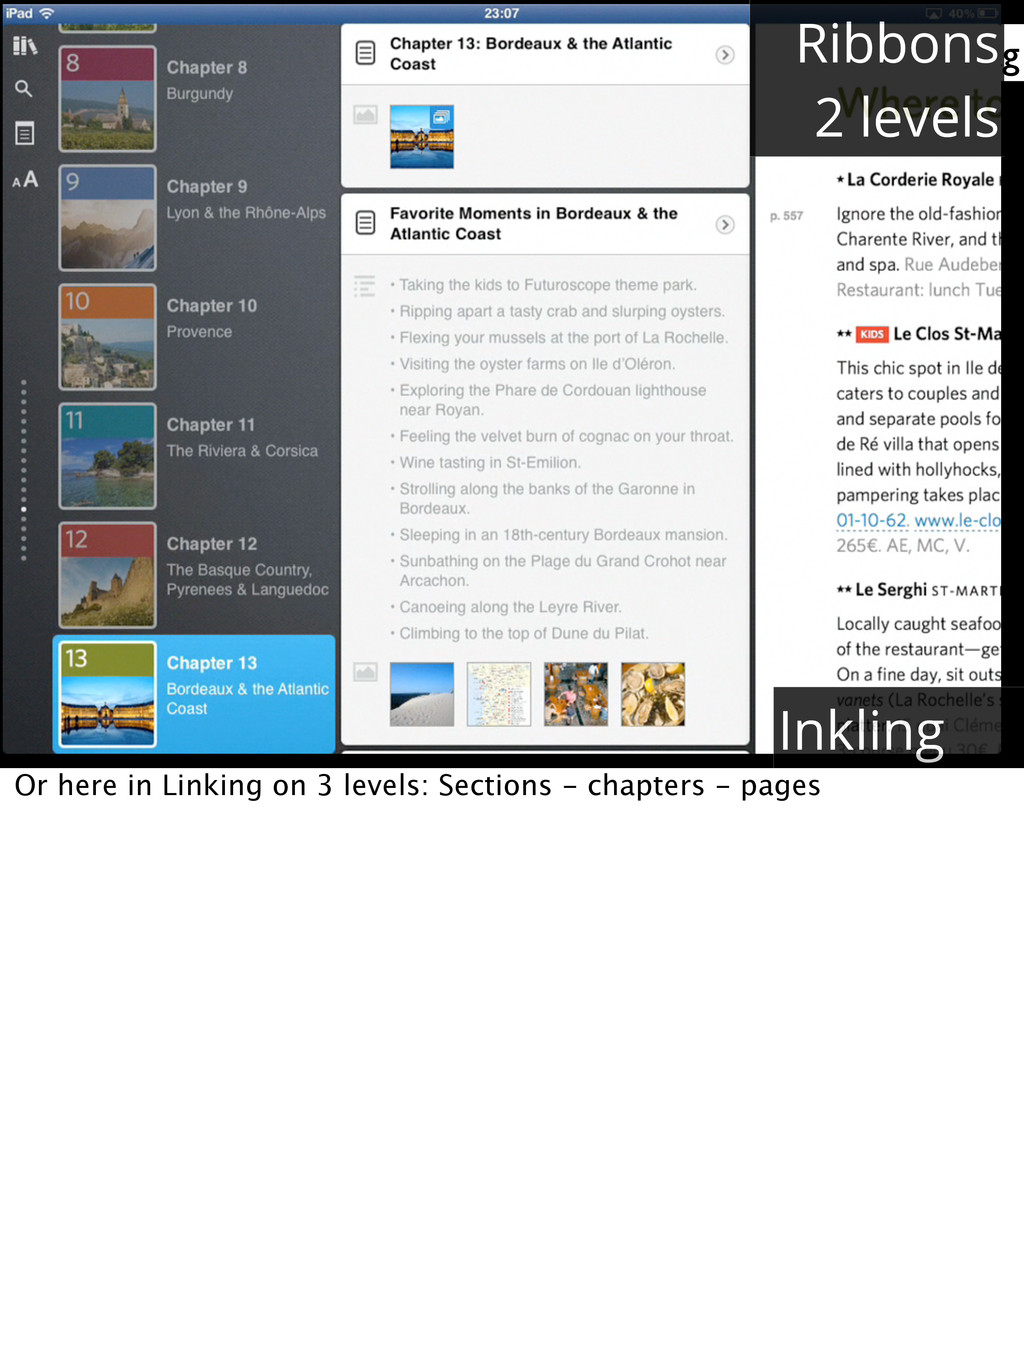 2 Dimensions You Mag Inkling Ribbons 2 levels O...